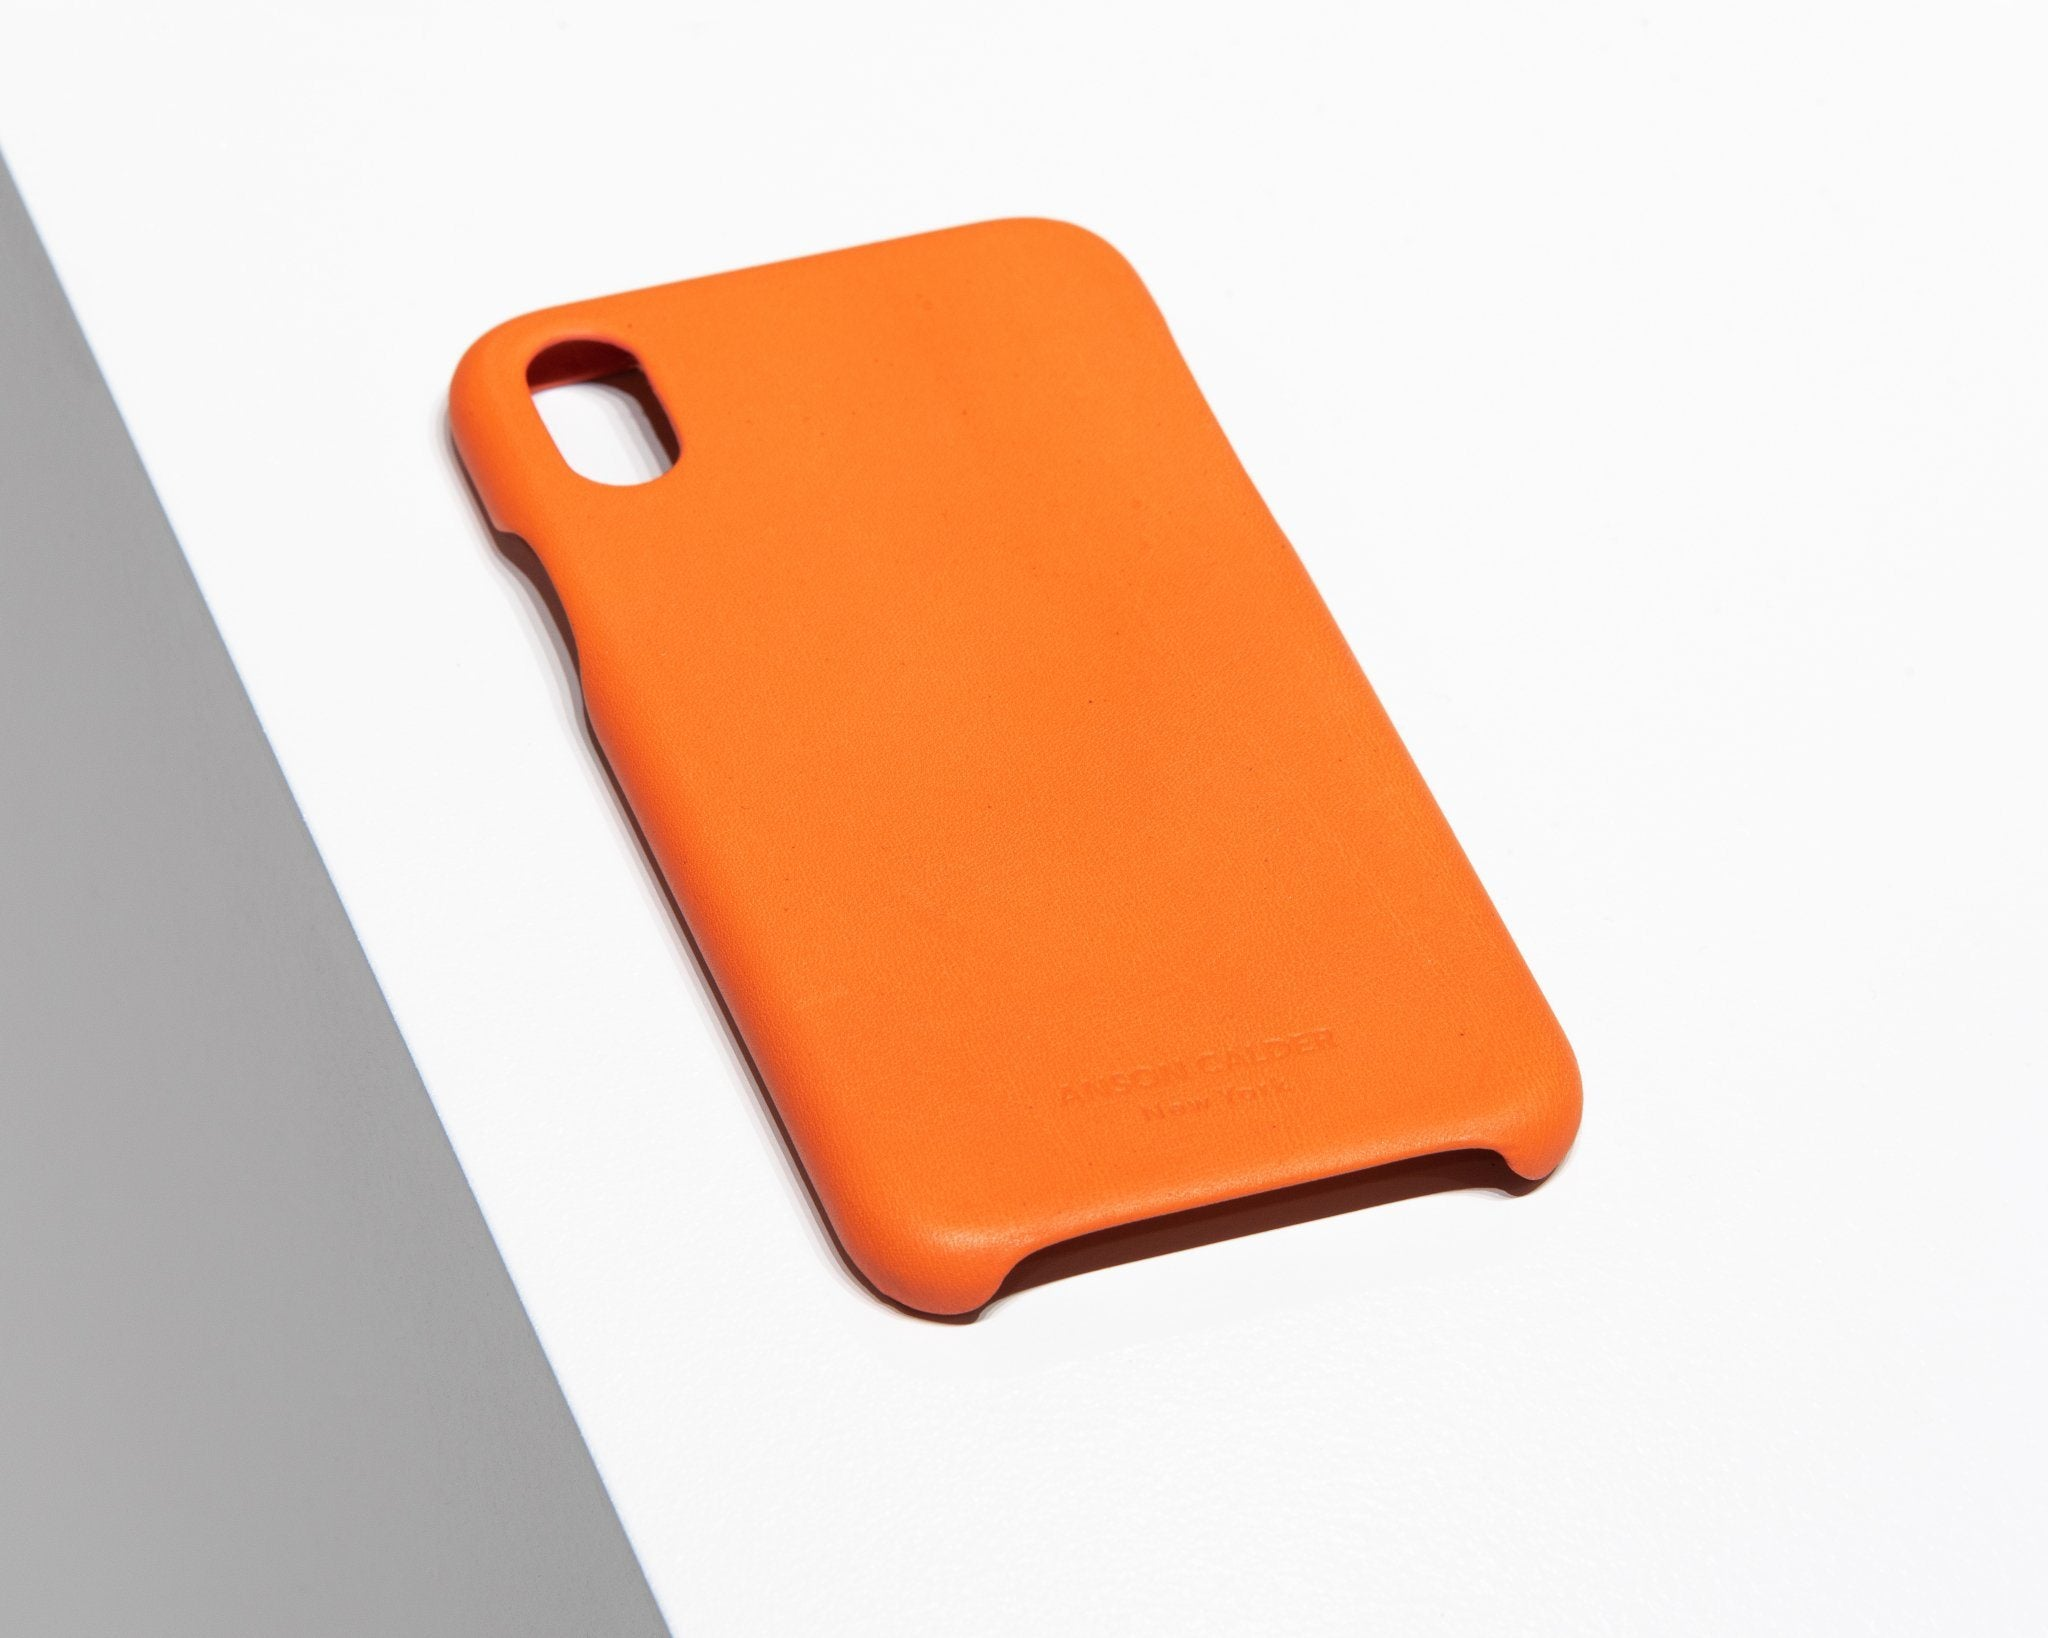 CALFSKIN iPHONE CASE CASES ANSON CALDER iPhone 8 _FSHD-Orange